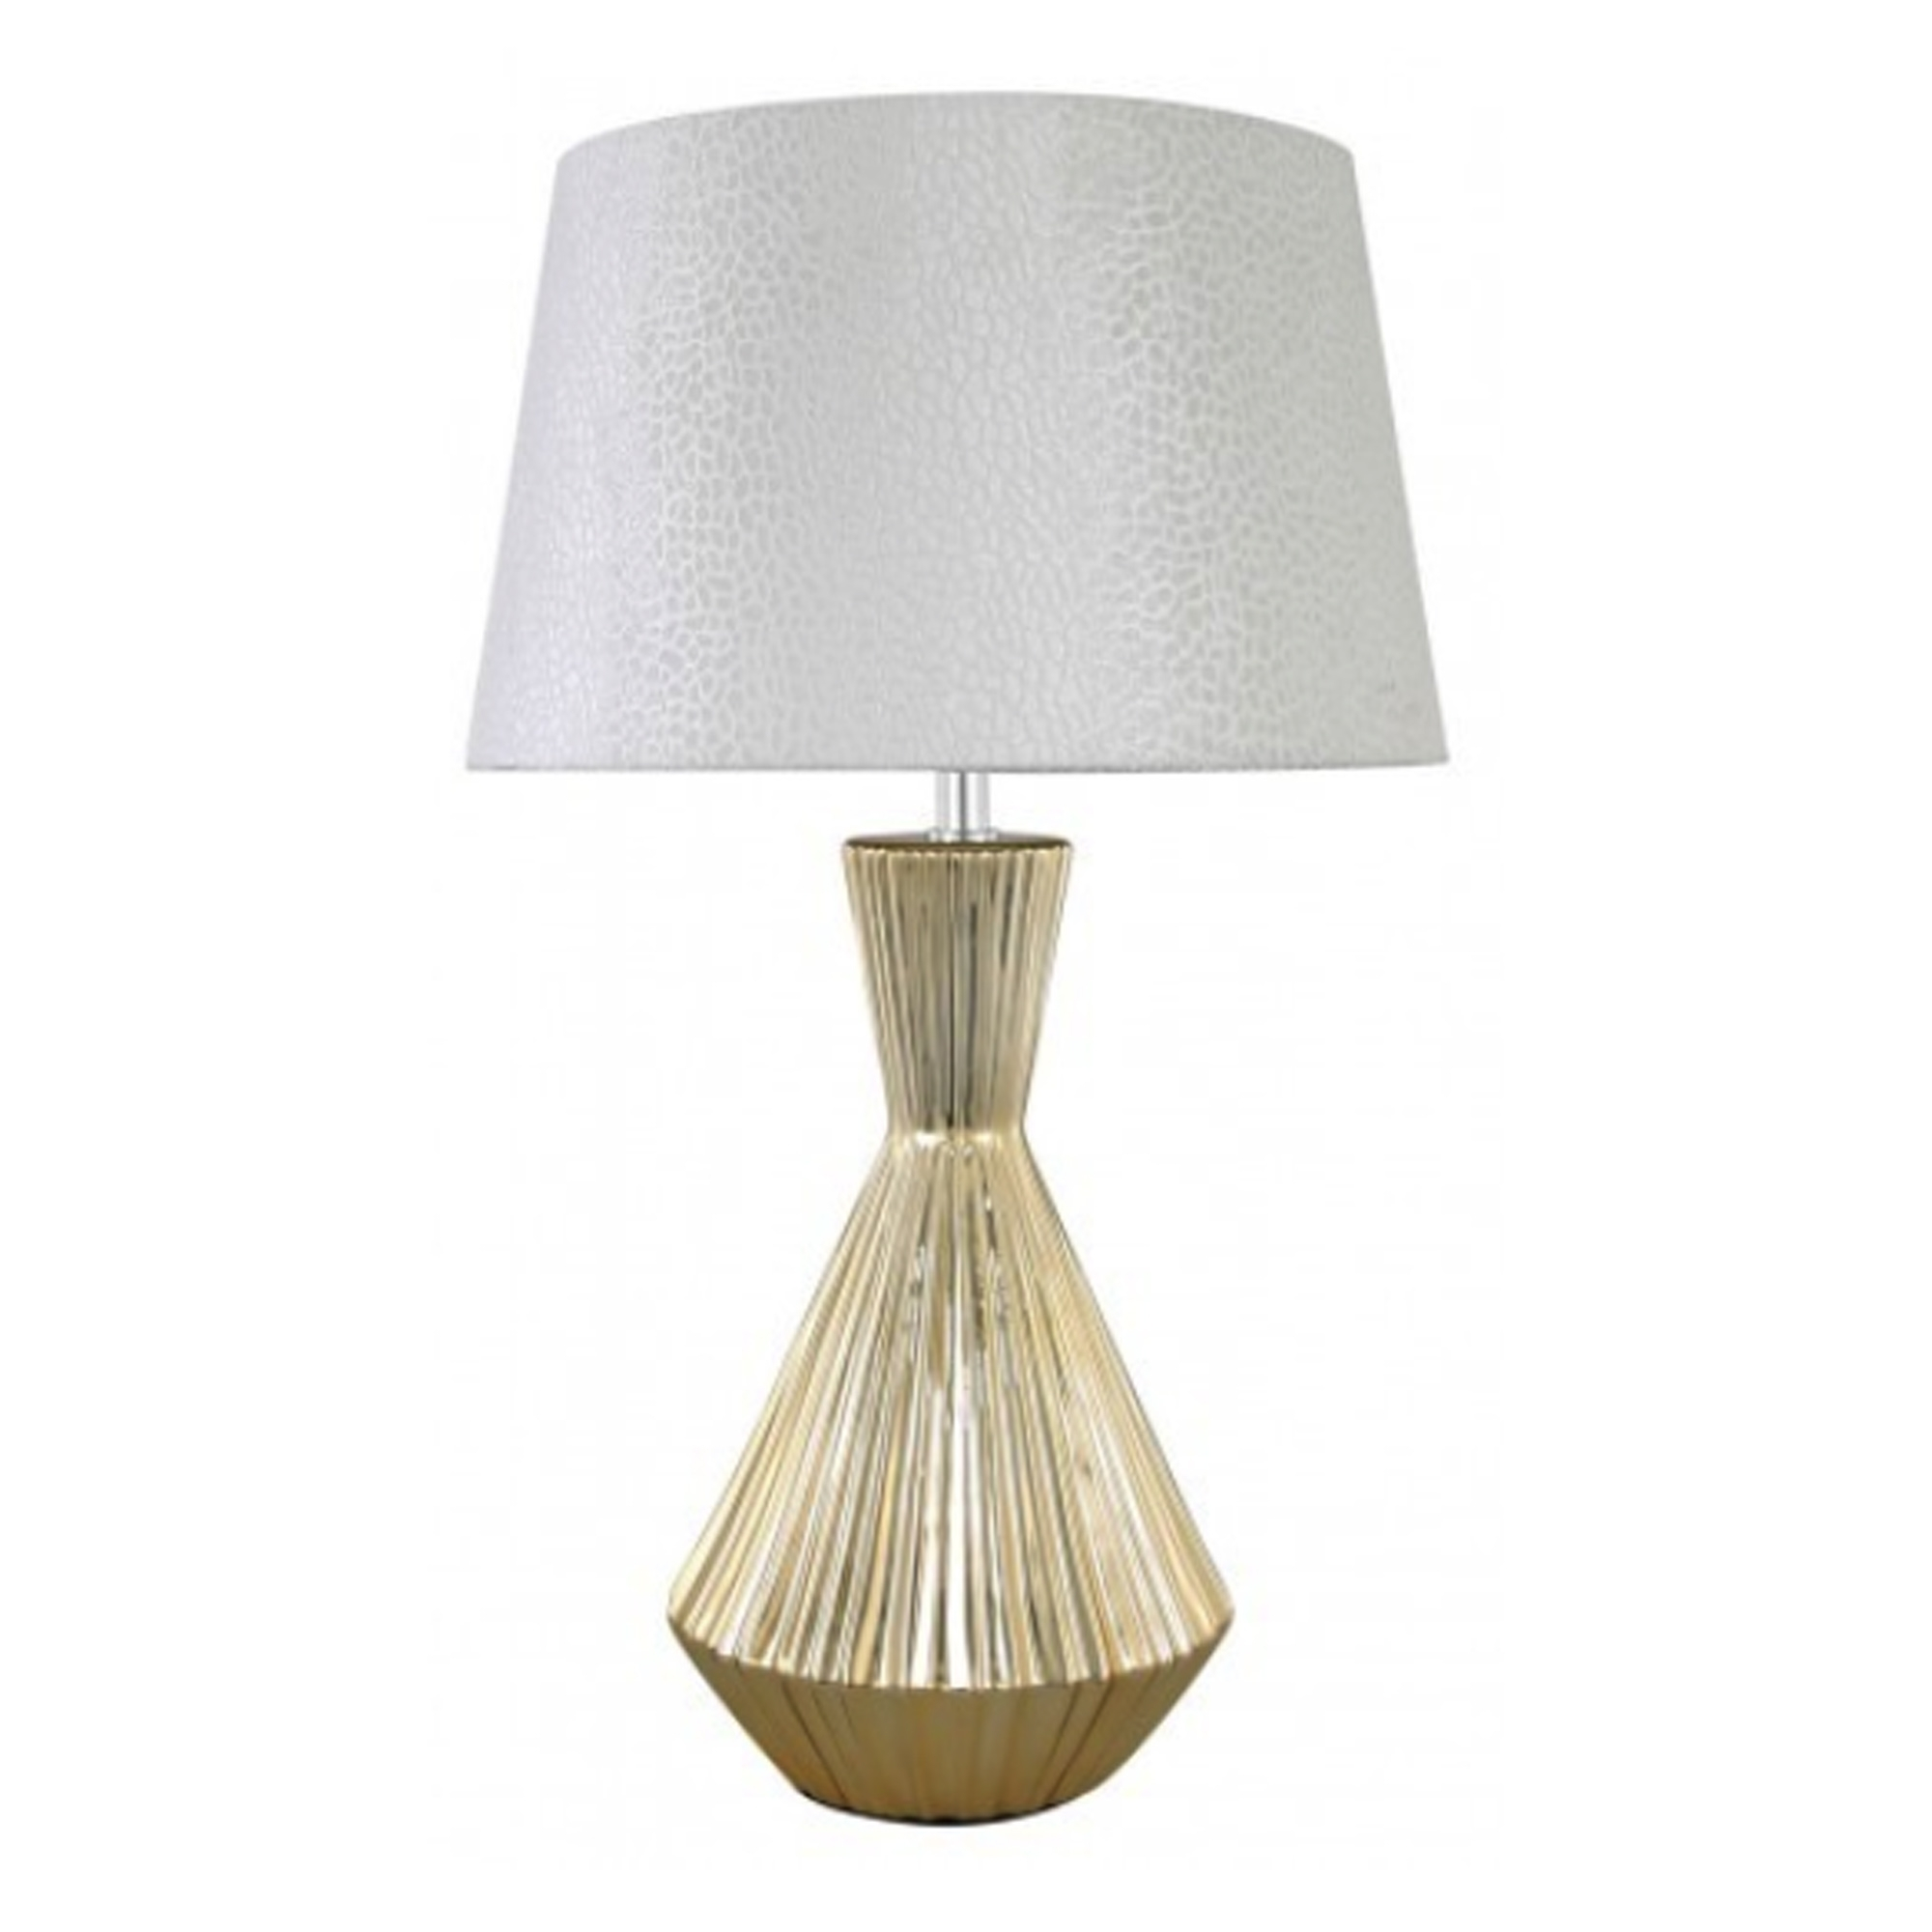 Small Gold Ceramic Modern Table Lamp | Table Lamps